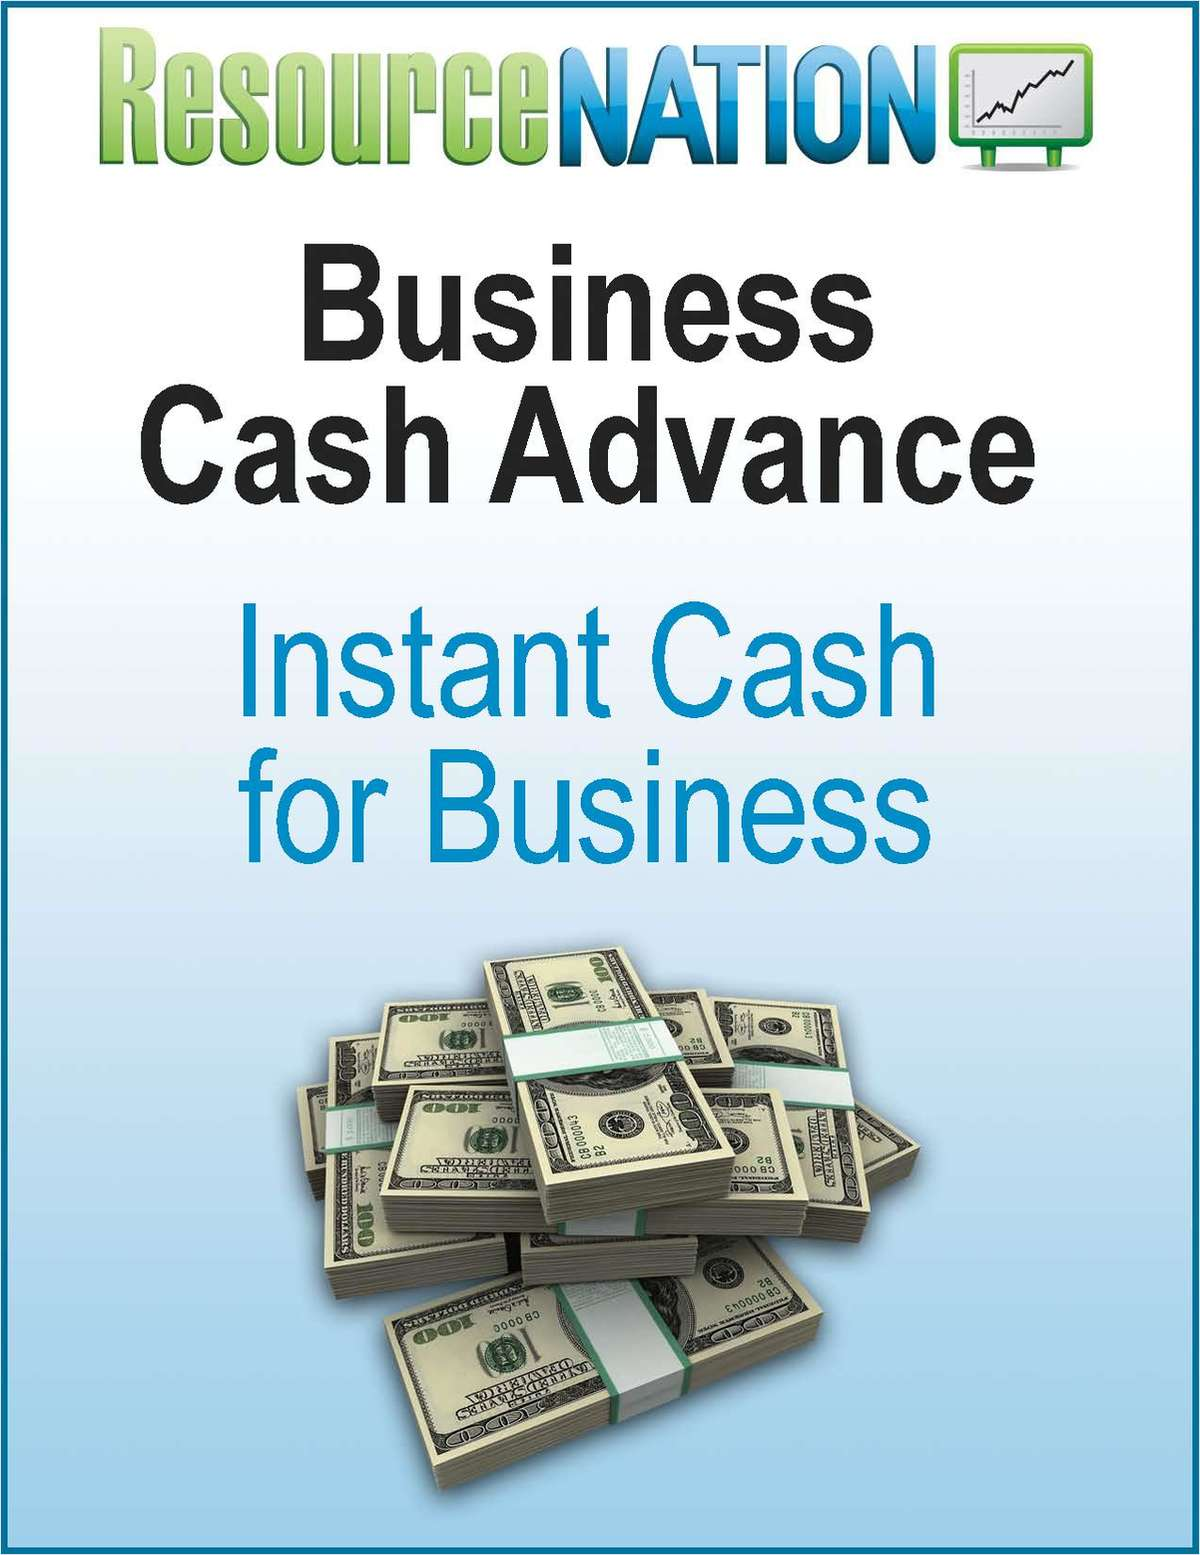 Getting Quick Cash for Your Business Without the Hassles of a Loan